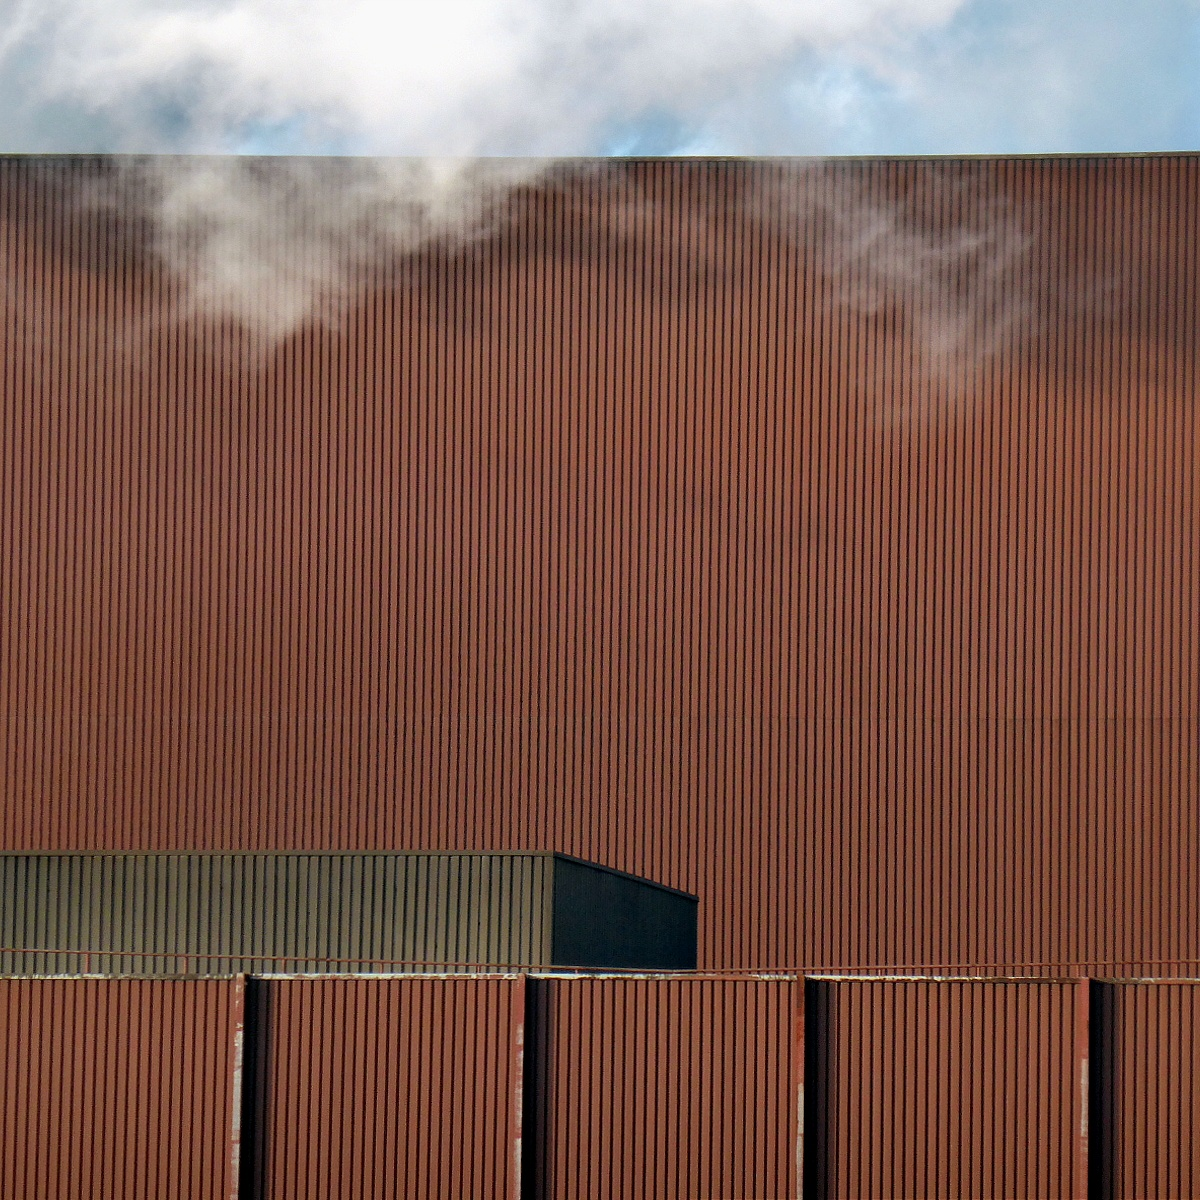 Industrial composition by Gernot Schwarz